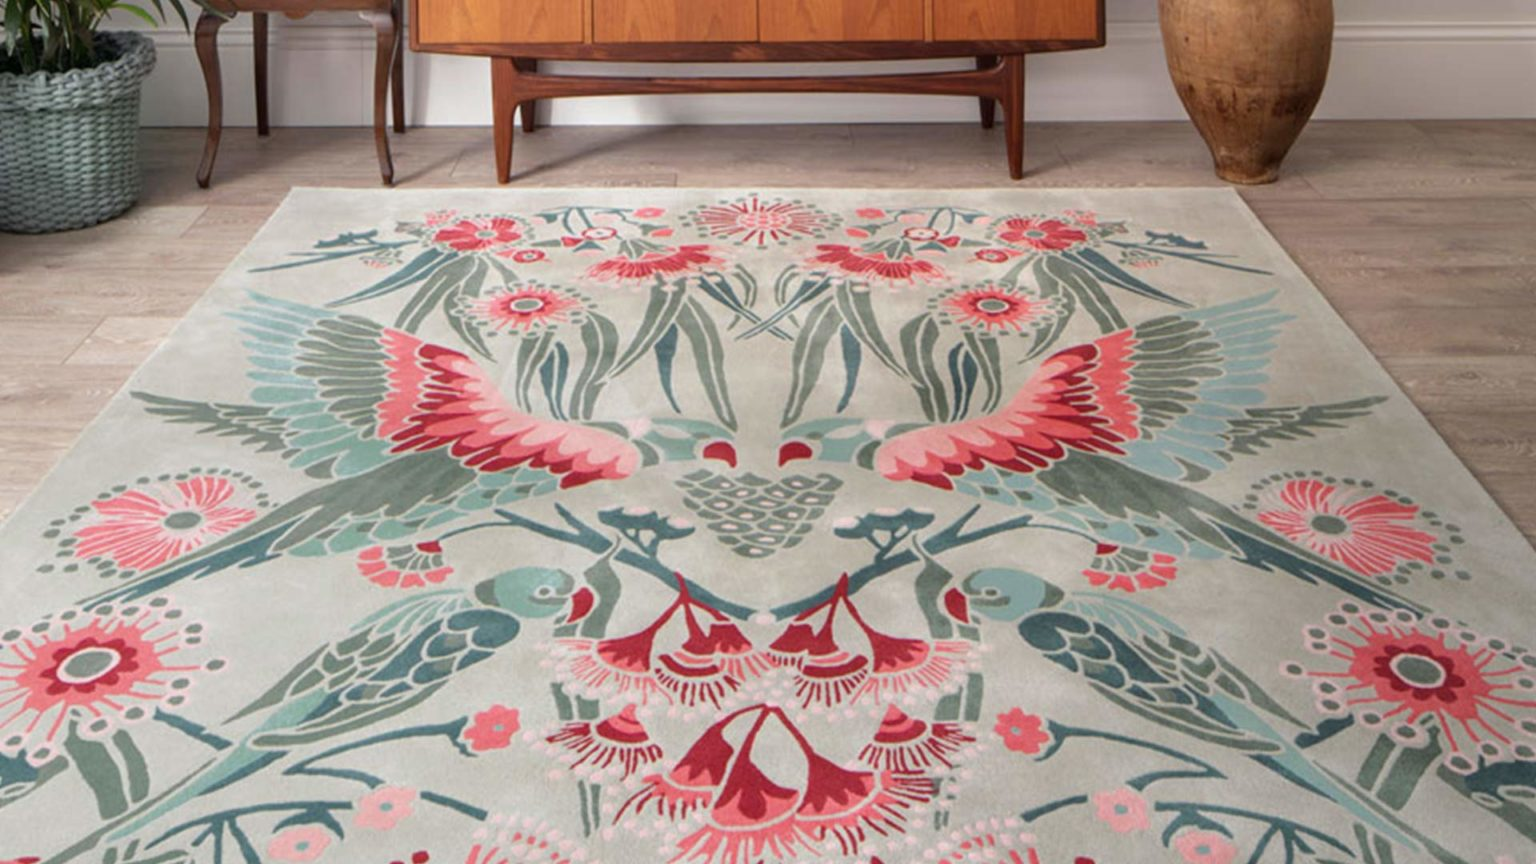 Designer Rugs hold the floor at this year Melbourne Cup